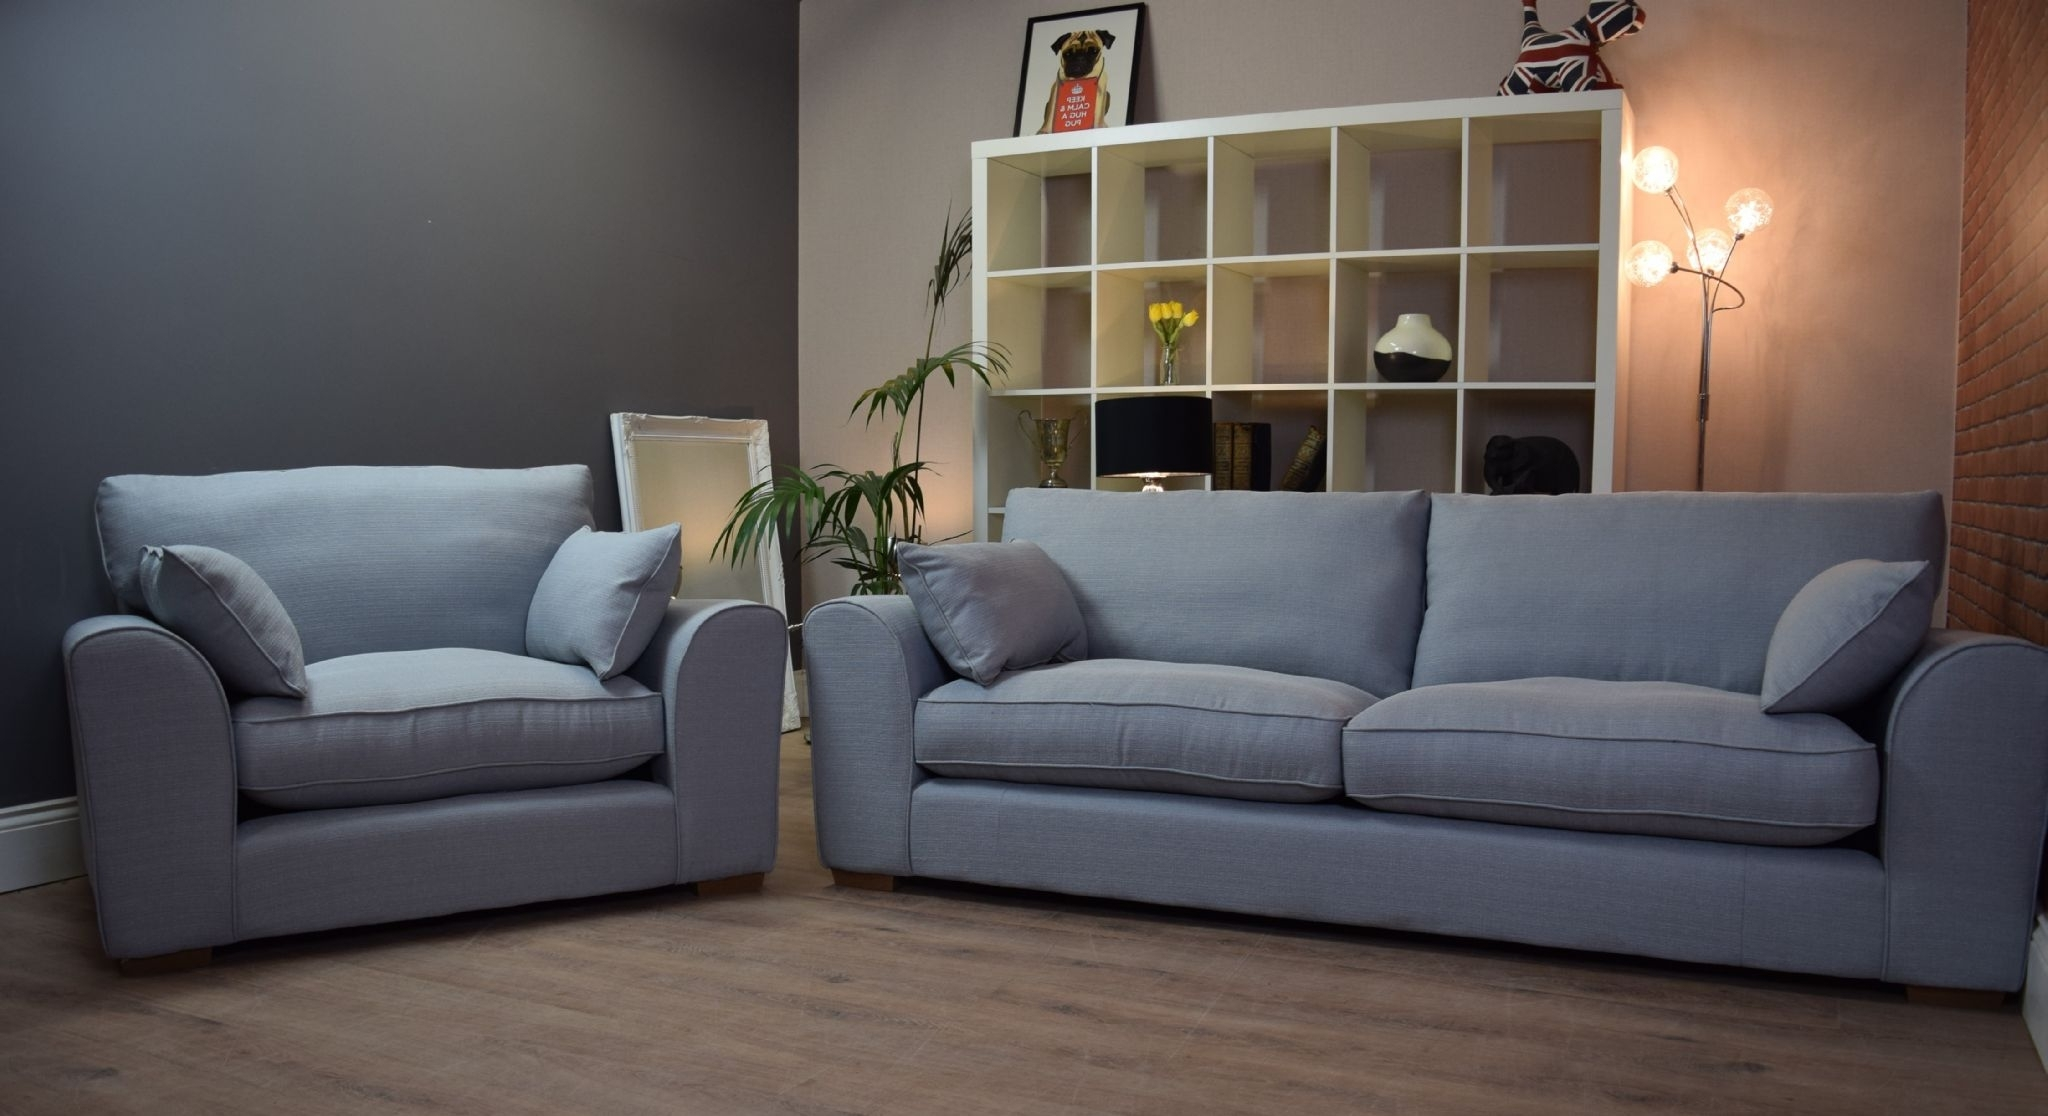 3 Seater Sofas And Cuddle Chairs With Regard To Most Current Set New Ashdown 3 Seater Sofa & Cuddle Chair Set – Duck Egg Blue (View 5 of 15)